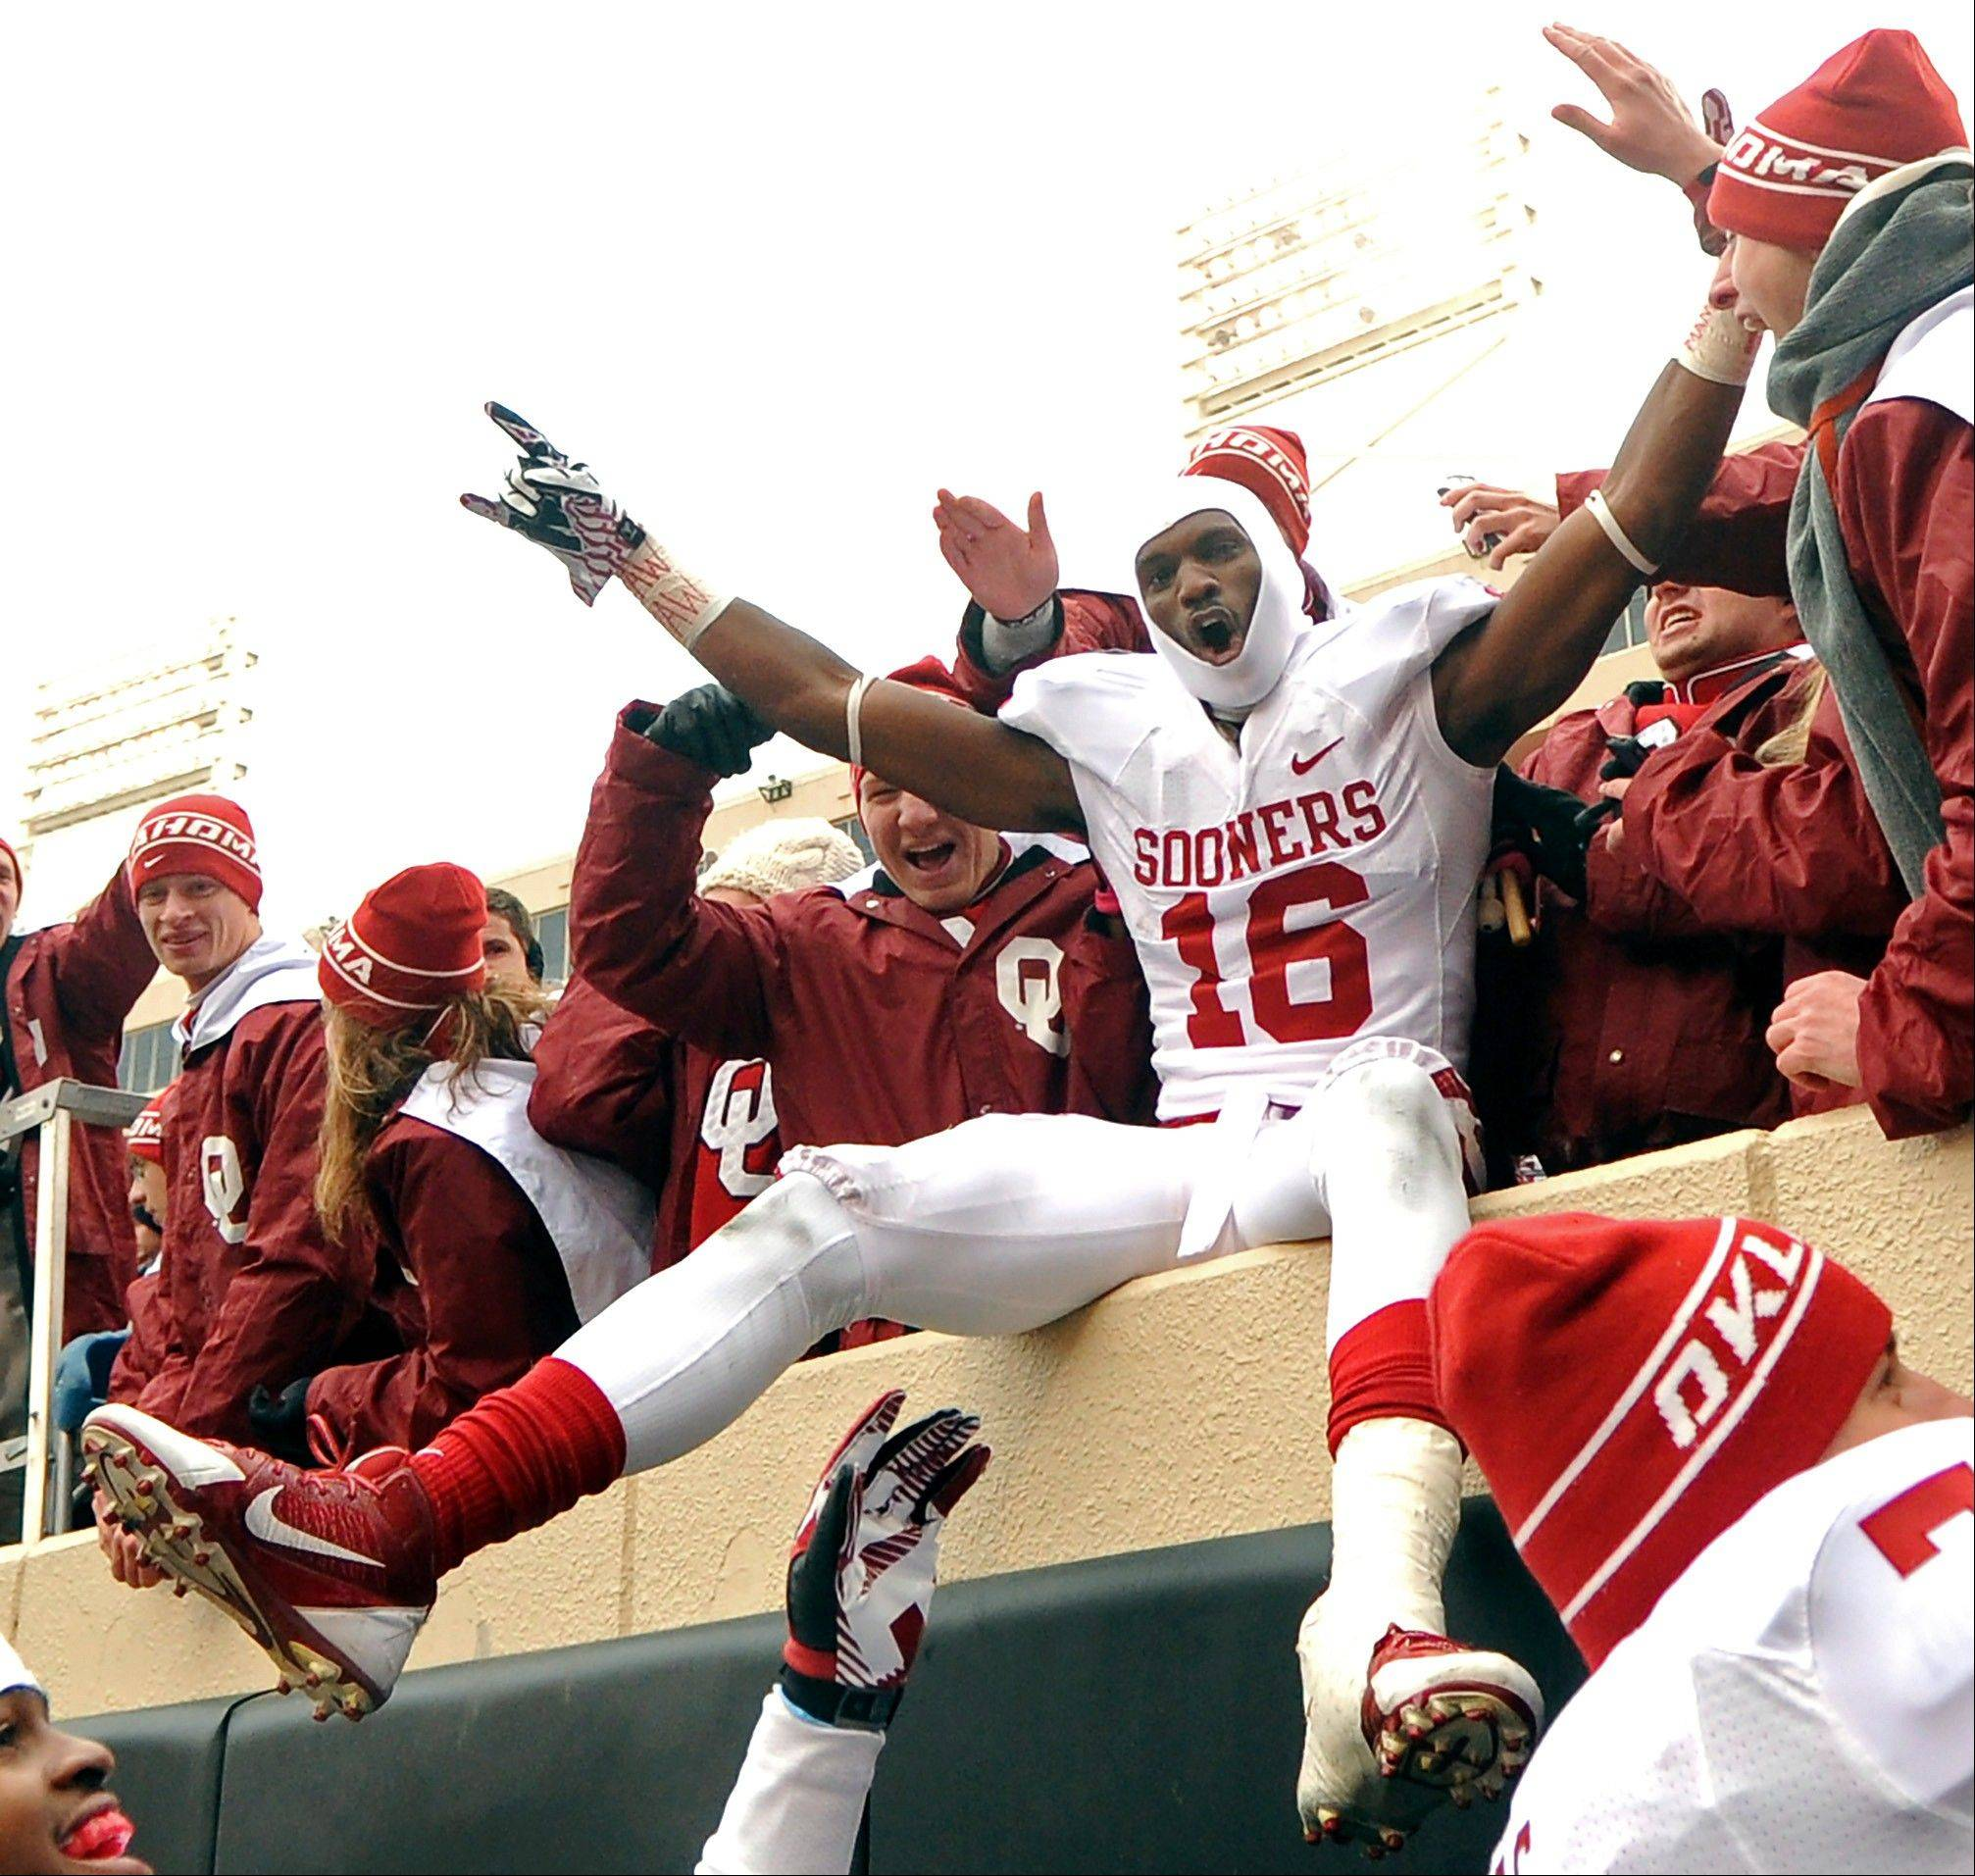 Oklahoma wide receiver Jaz Reynolds celebrates with fans after a 34-24 win over Oklahoma State on Saturday in Stillwater.